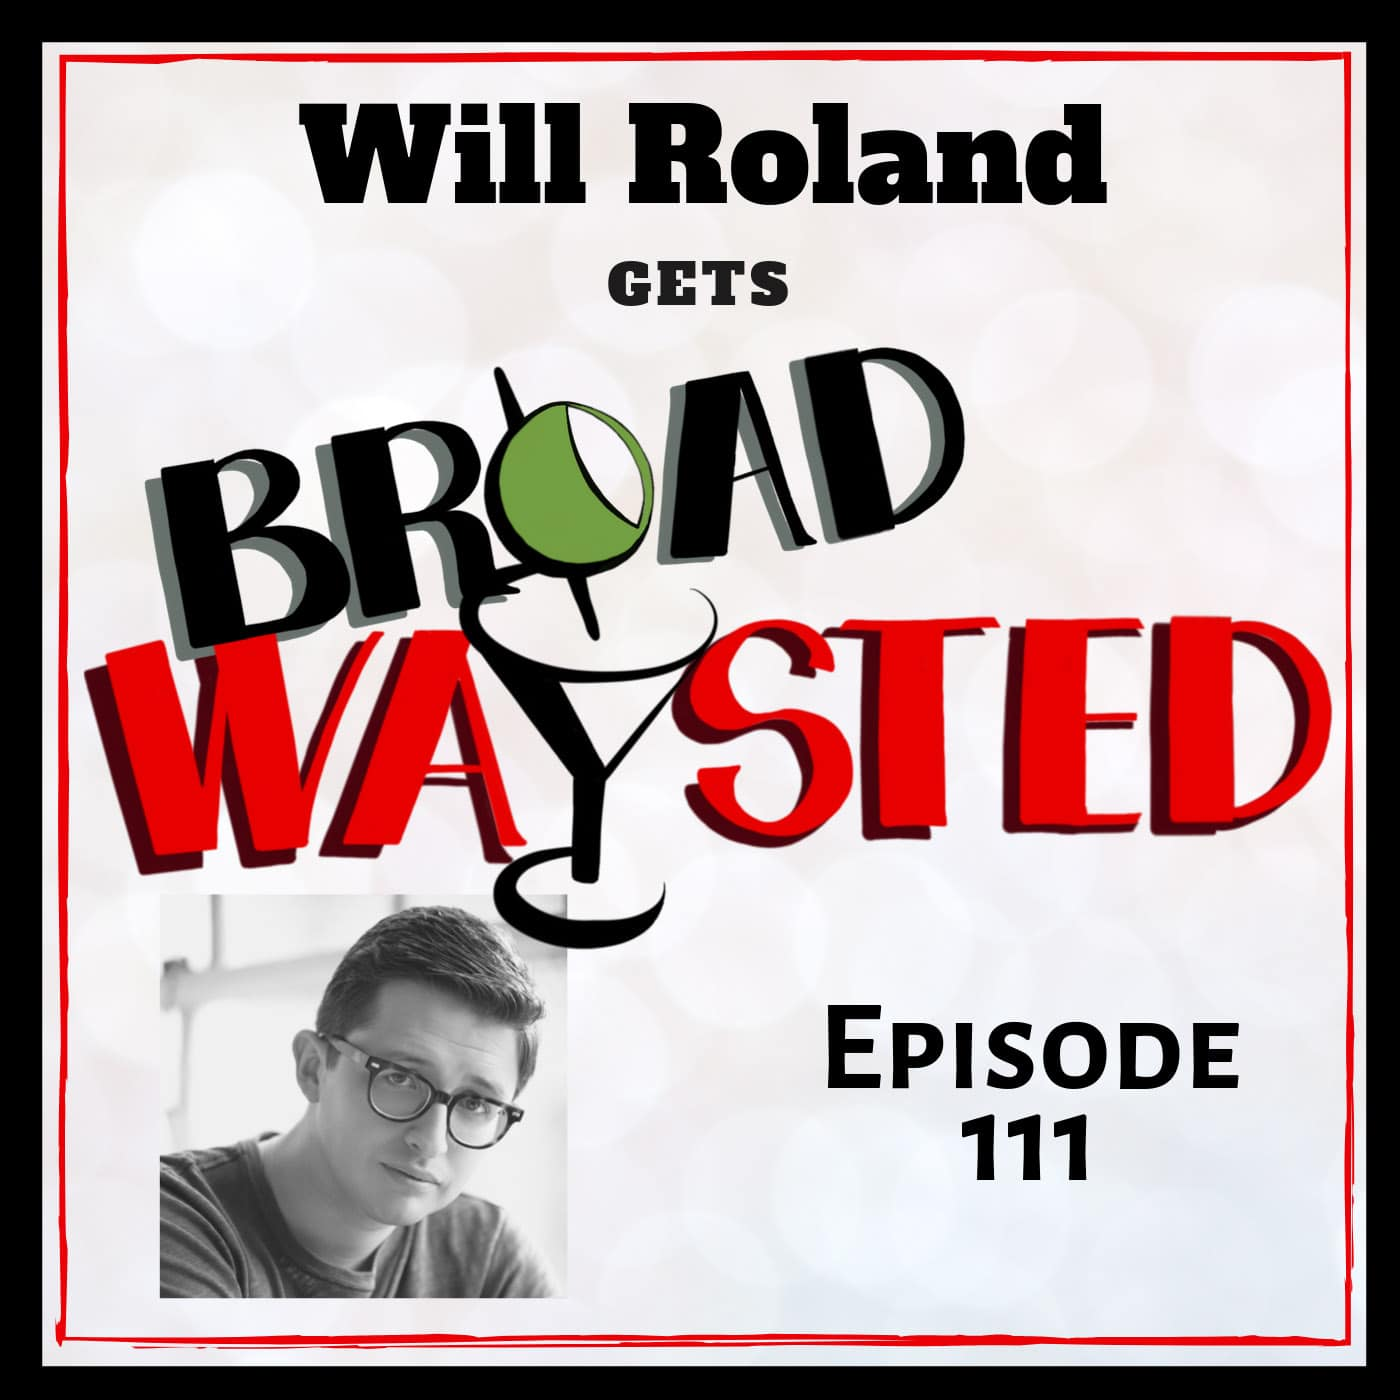 Broadwaysted Ep 111 Will Roland